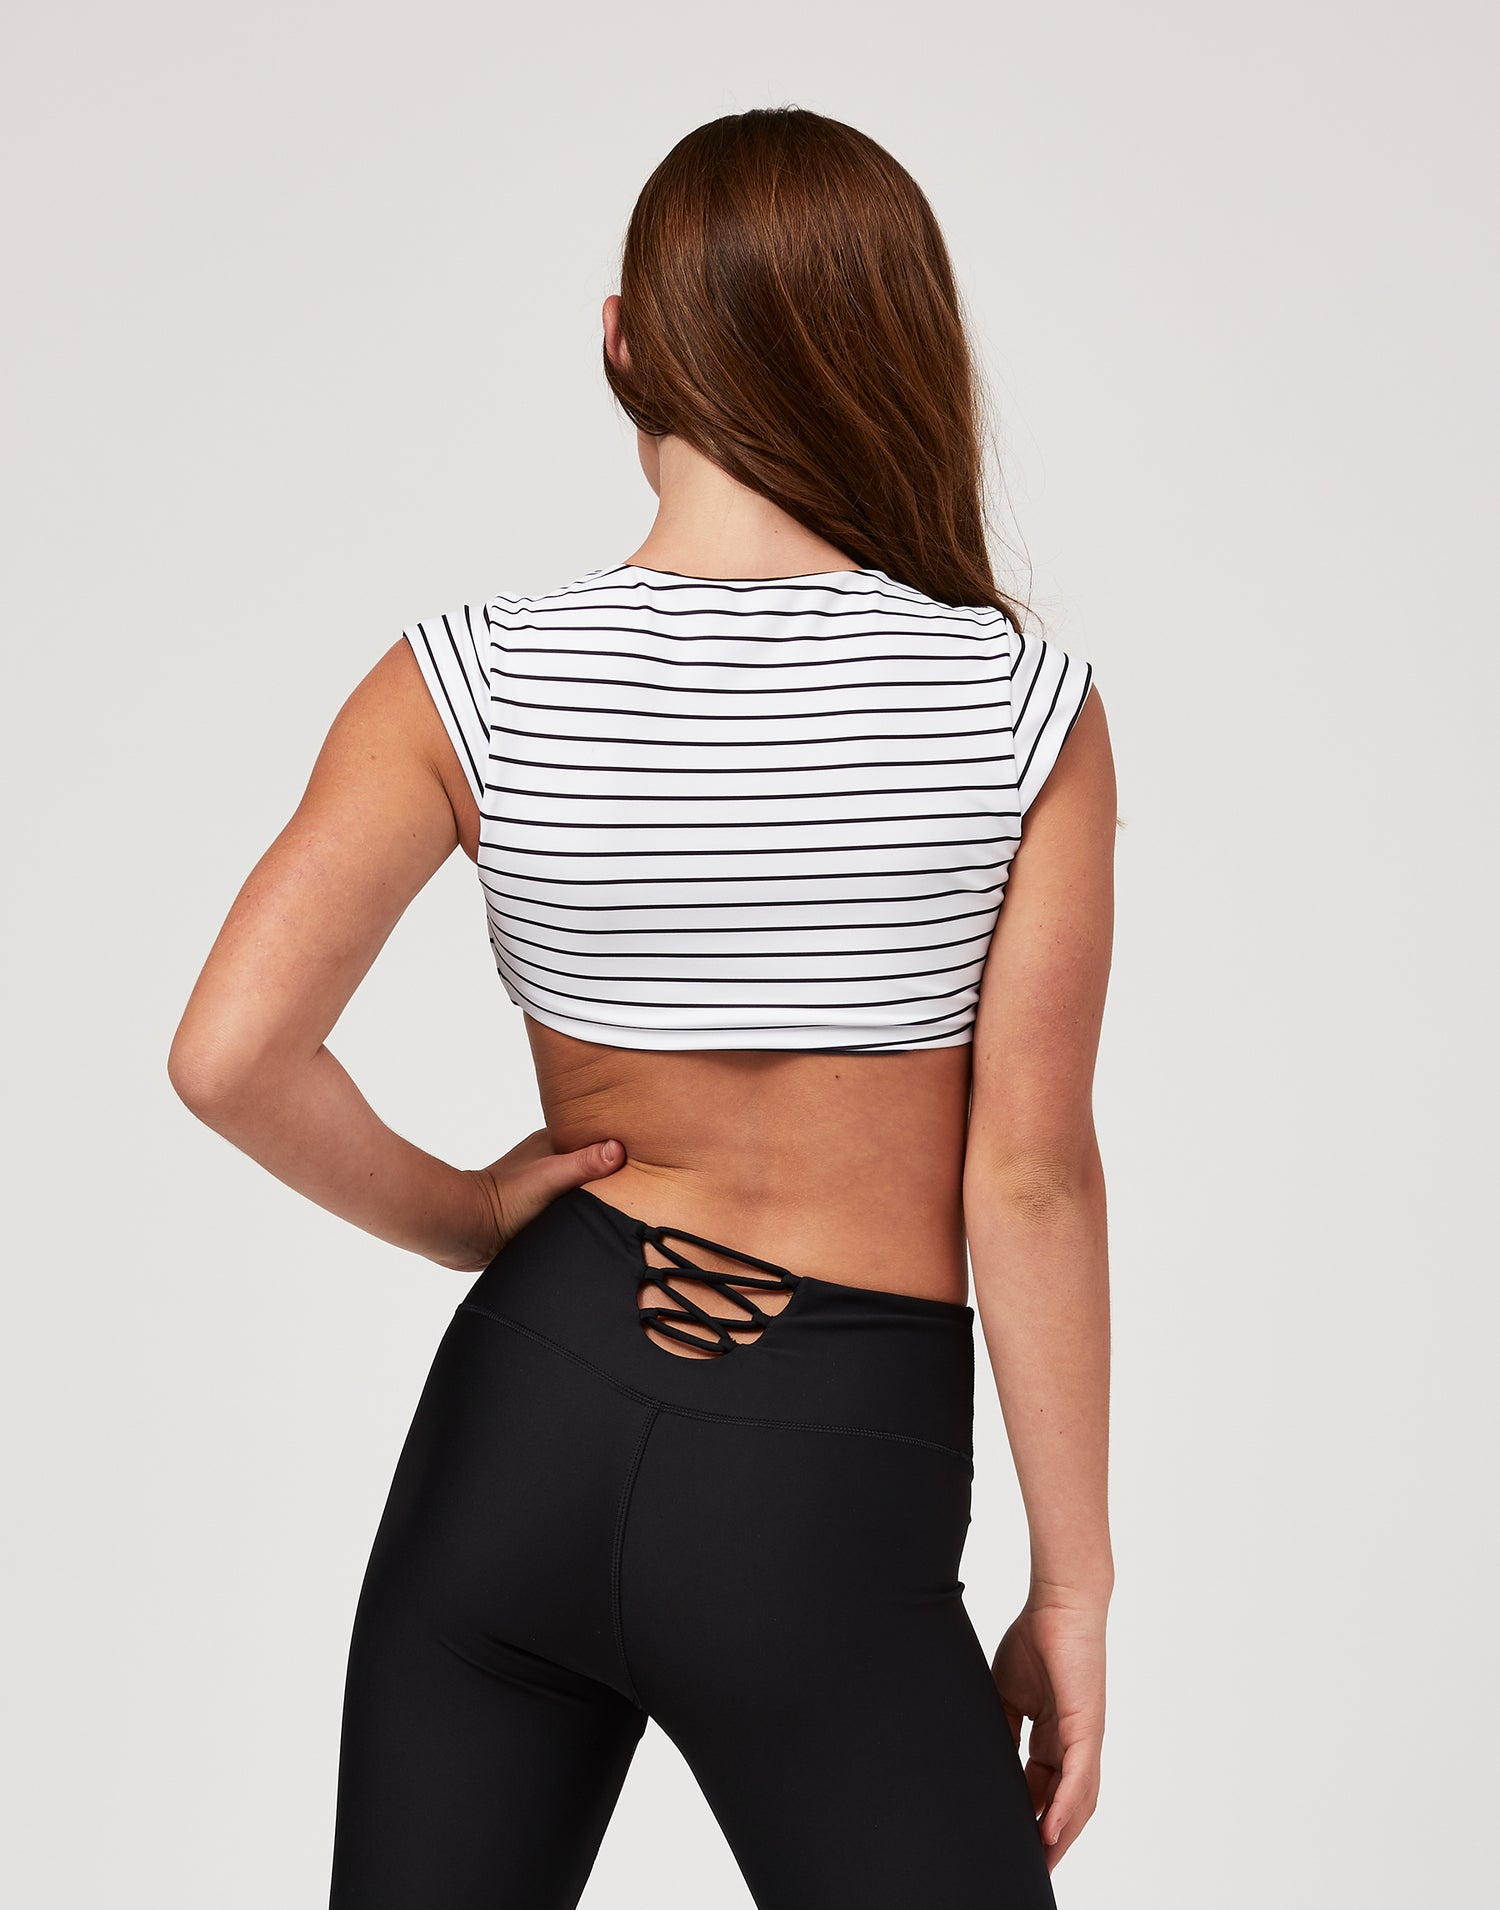 Child Brinley Reversible Crop Top in White Stripe - back view